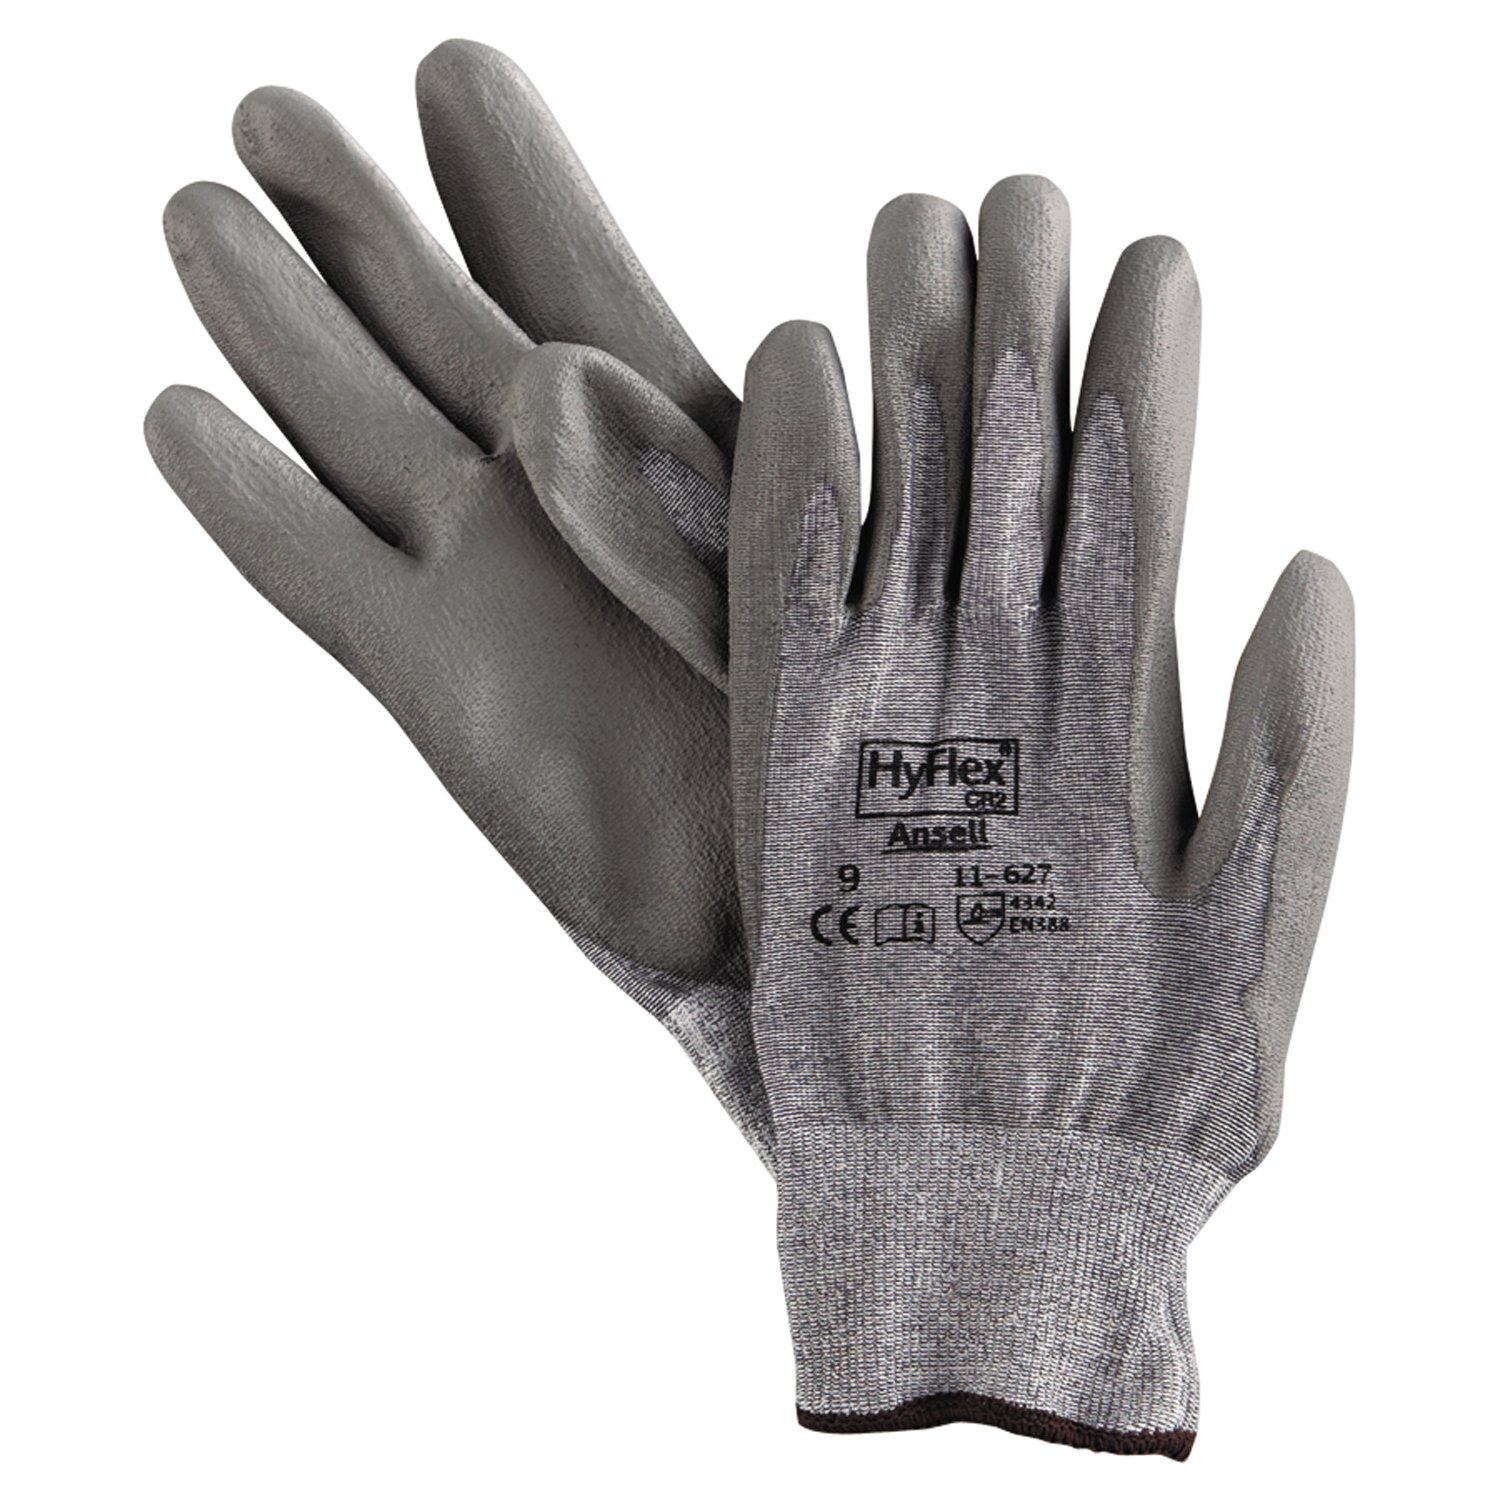 Ansell 11-627-9 HyFlex Dyneema/Lycra Work Gloves, Size 9, Gray (Pack of 12) by Ansell (Image #1)